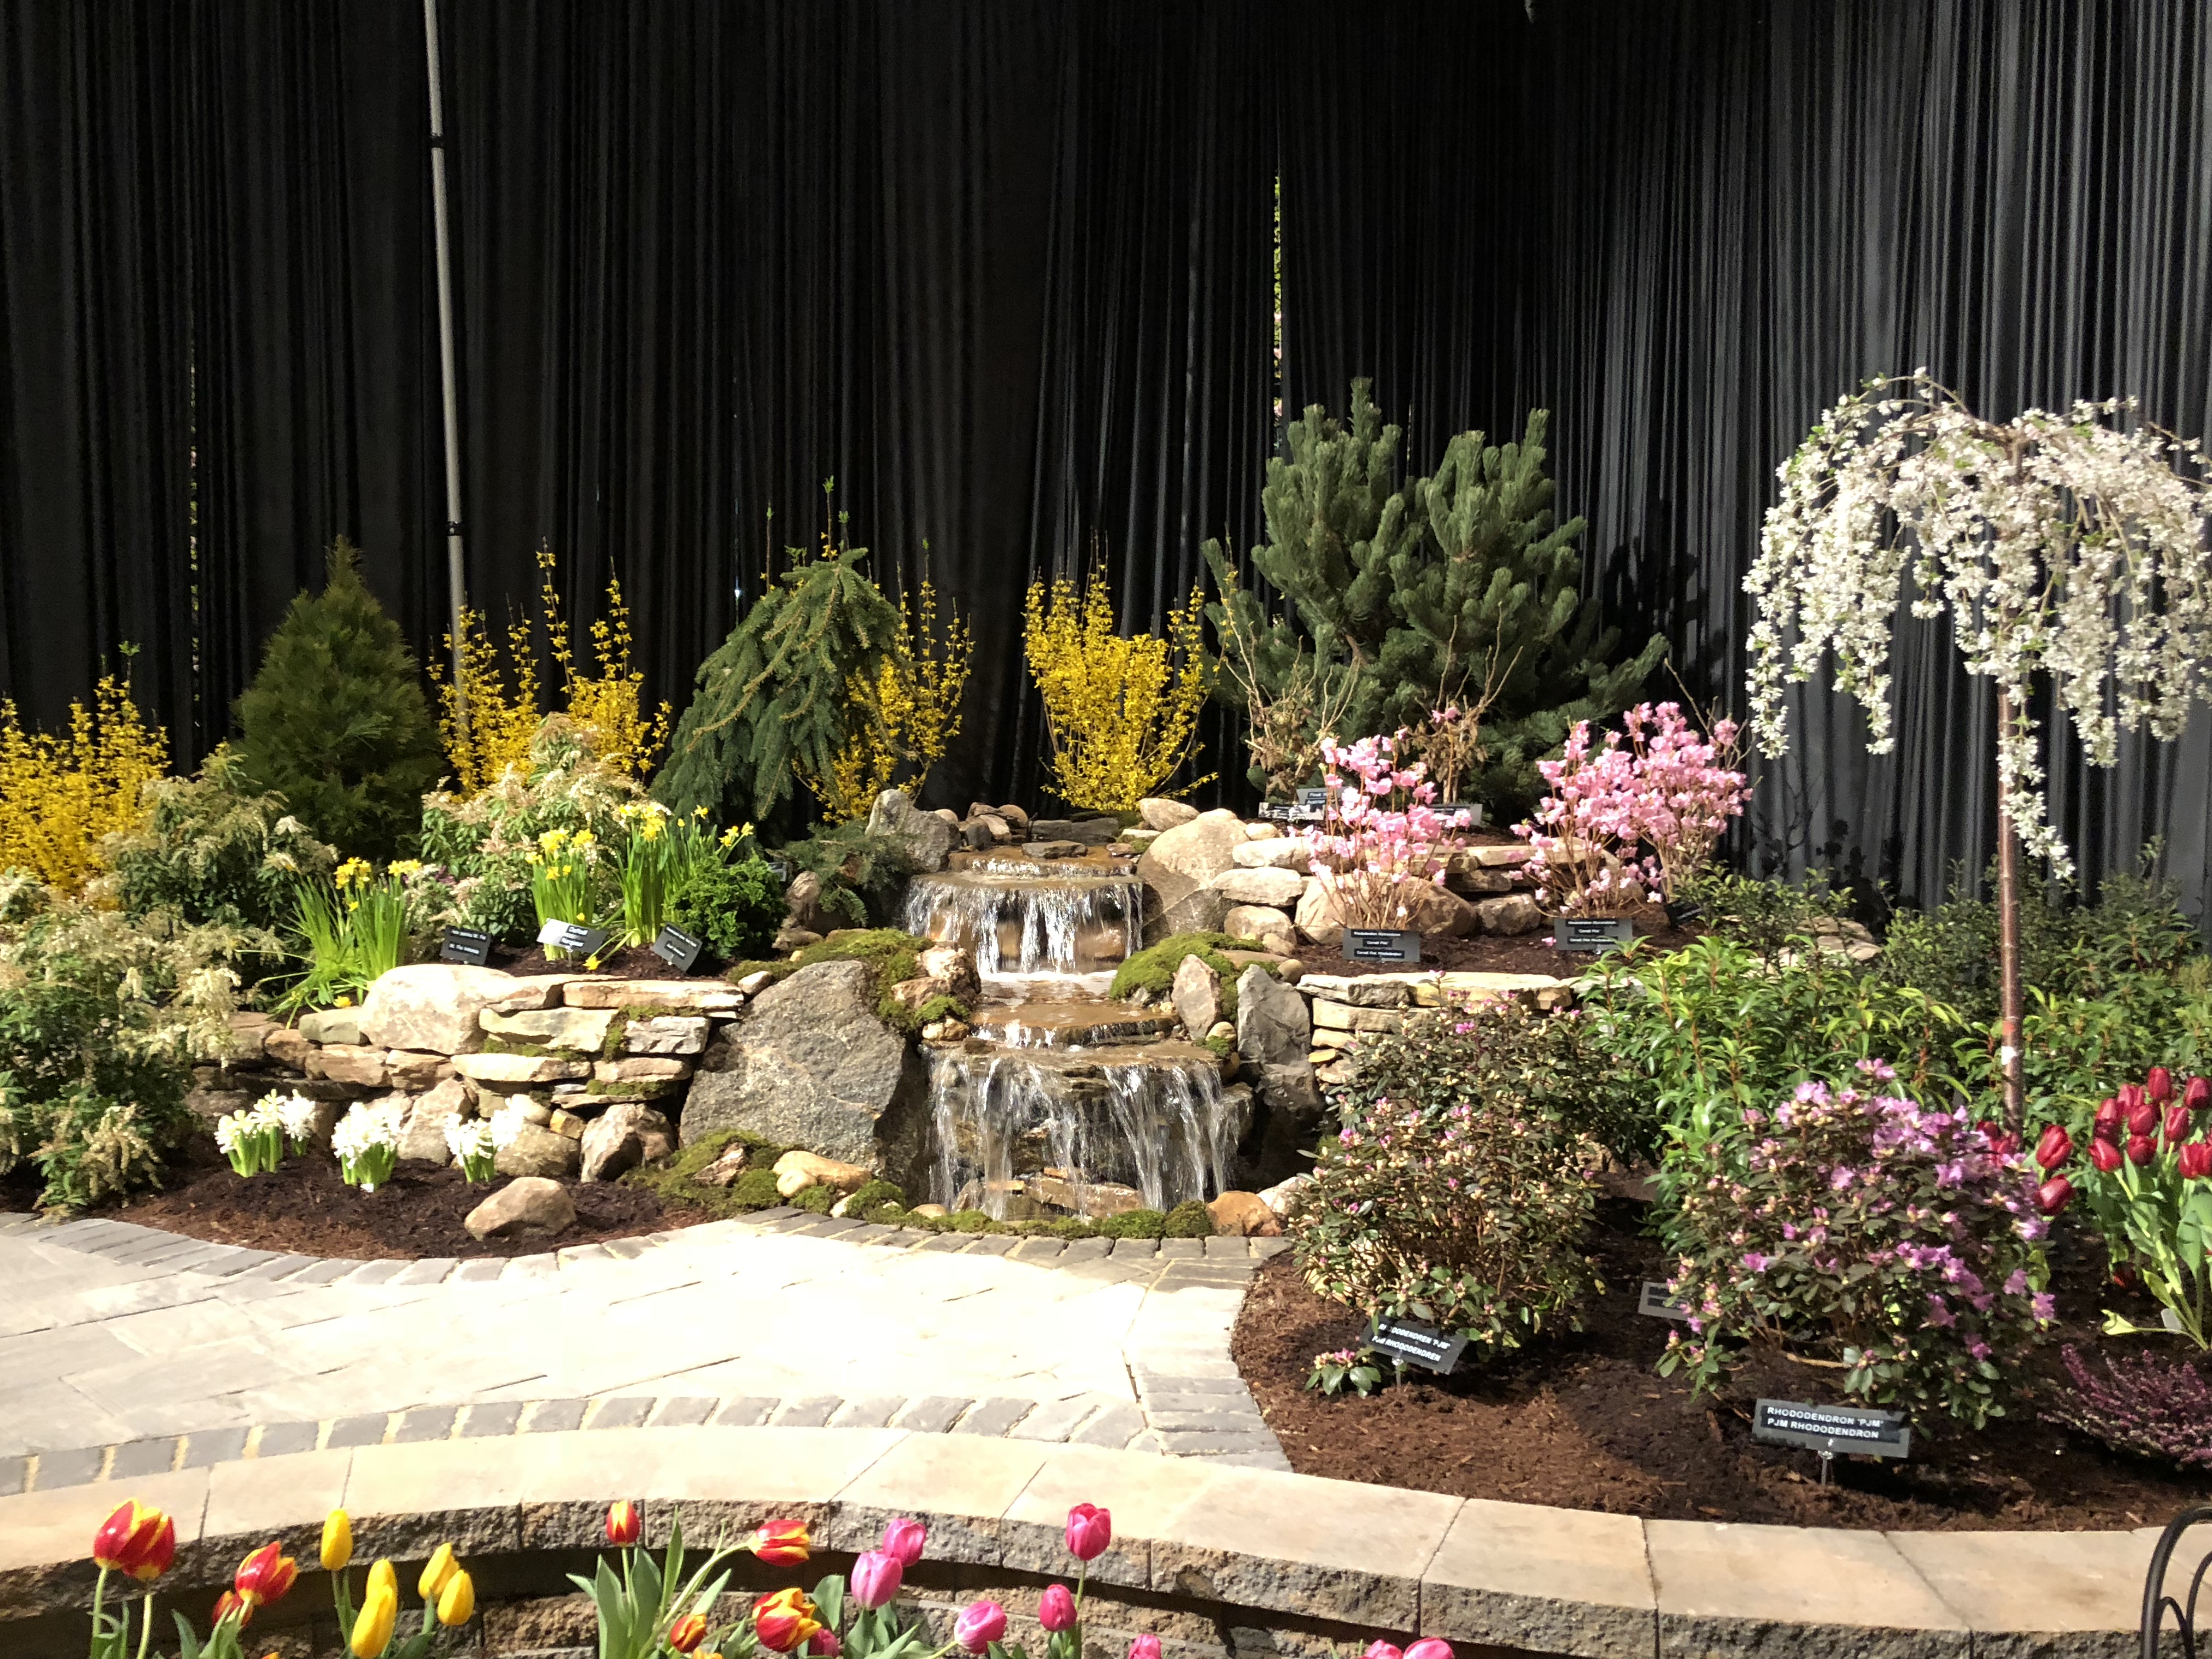 Landscaping with Water Features and Stone Walls